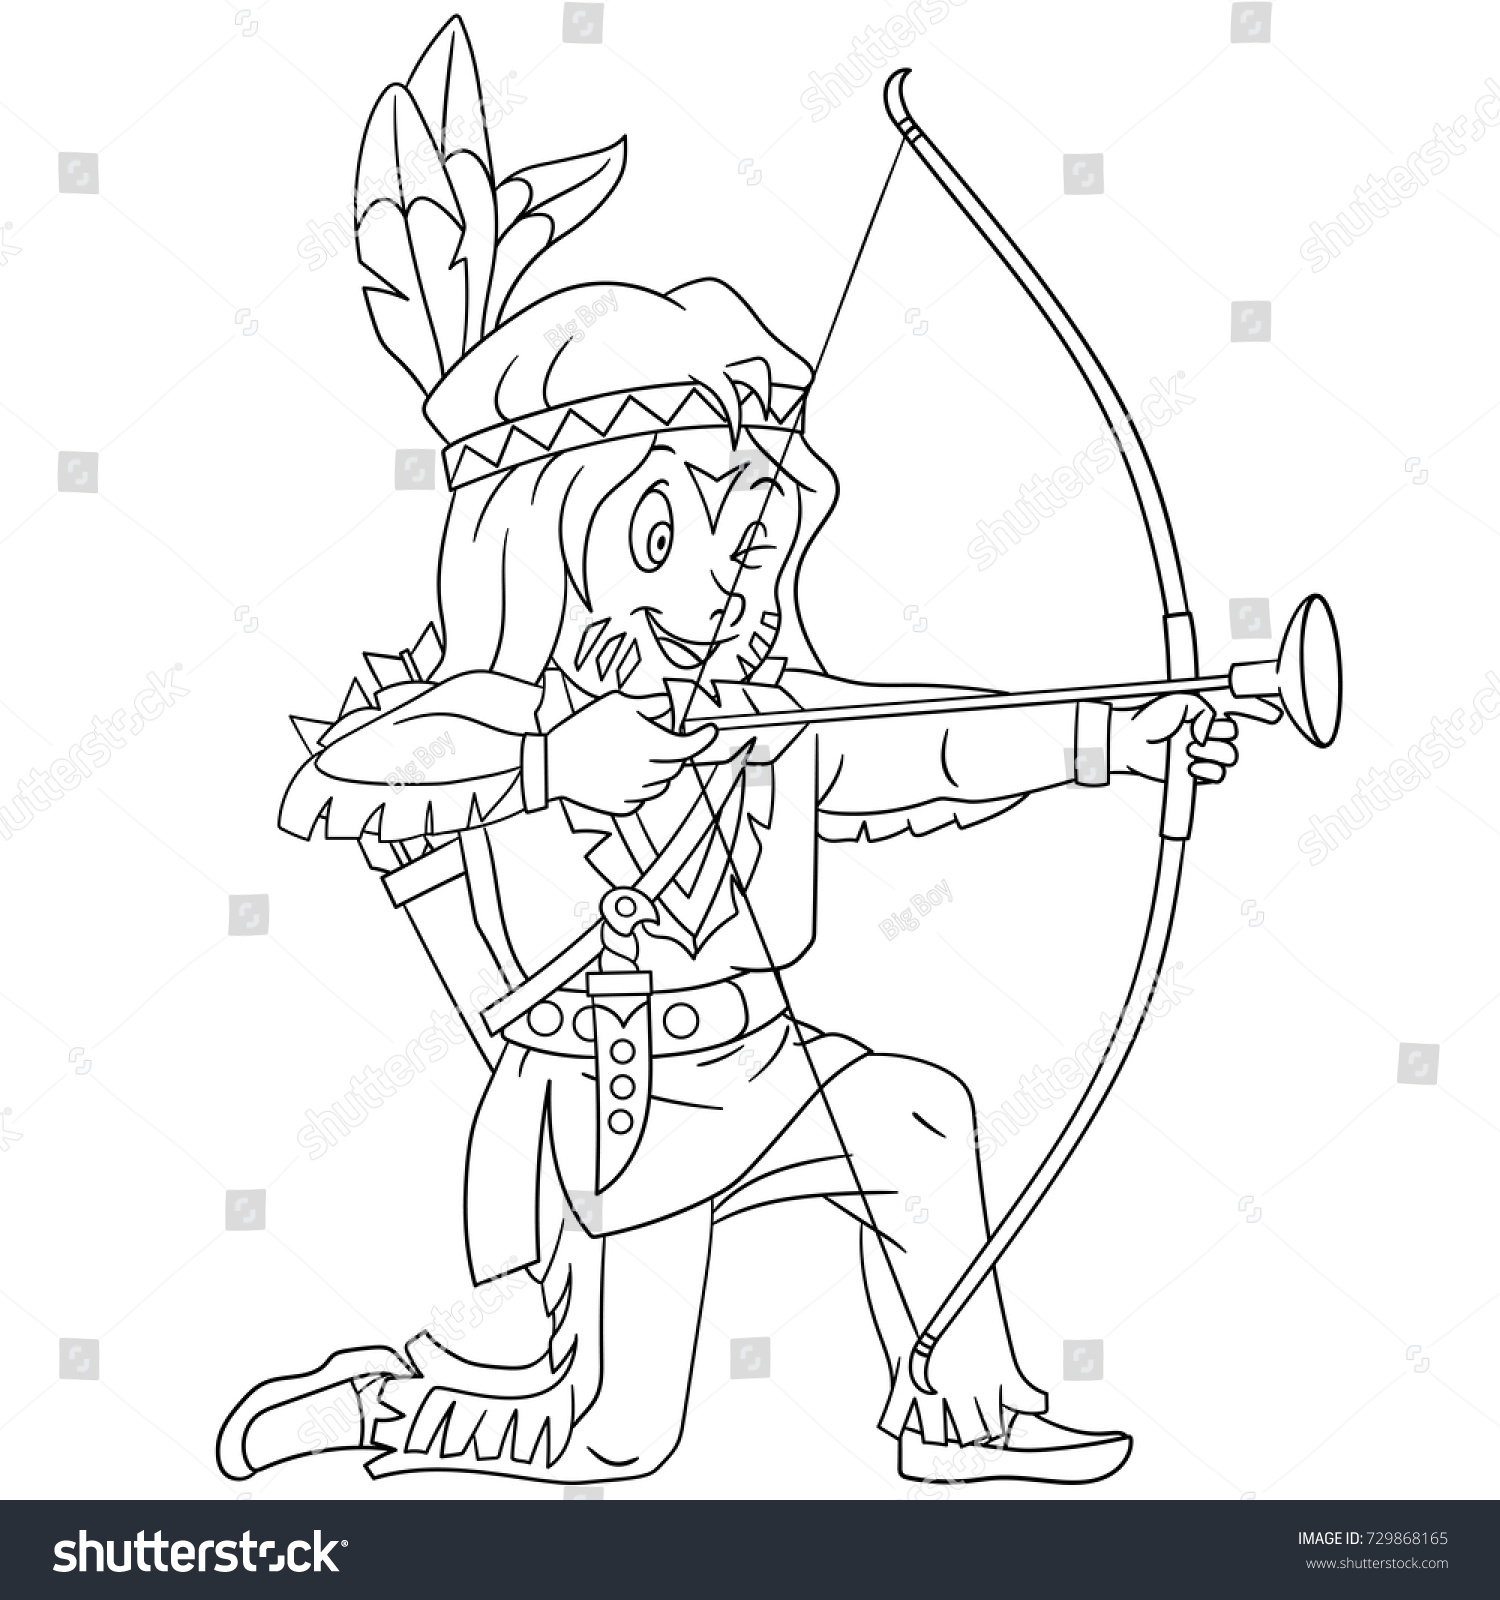 Coloring Page Cartoon Native American Indian Stock Vector